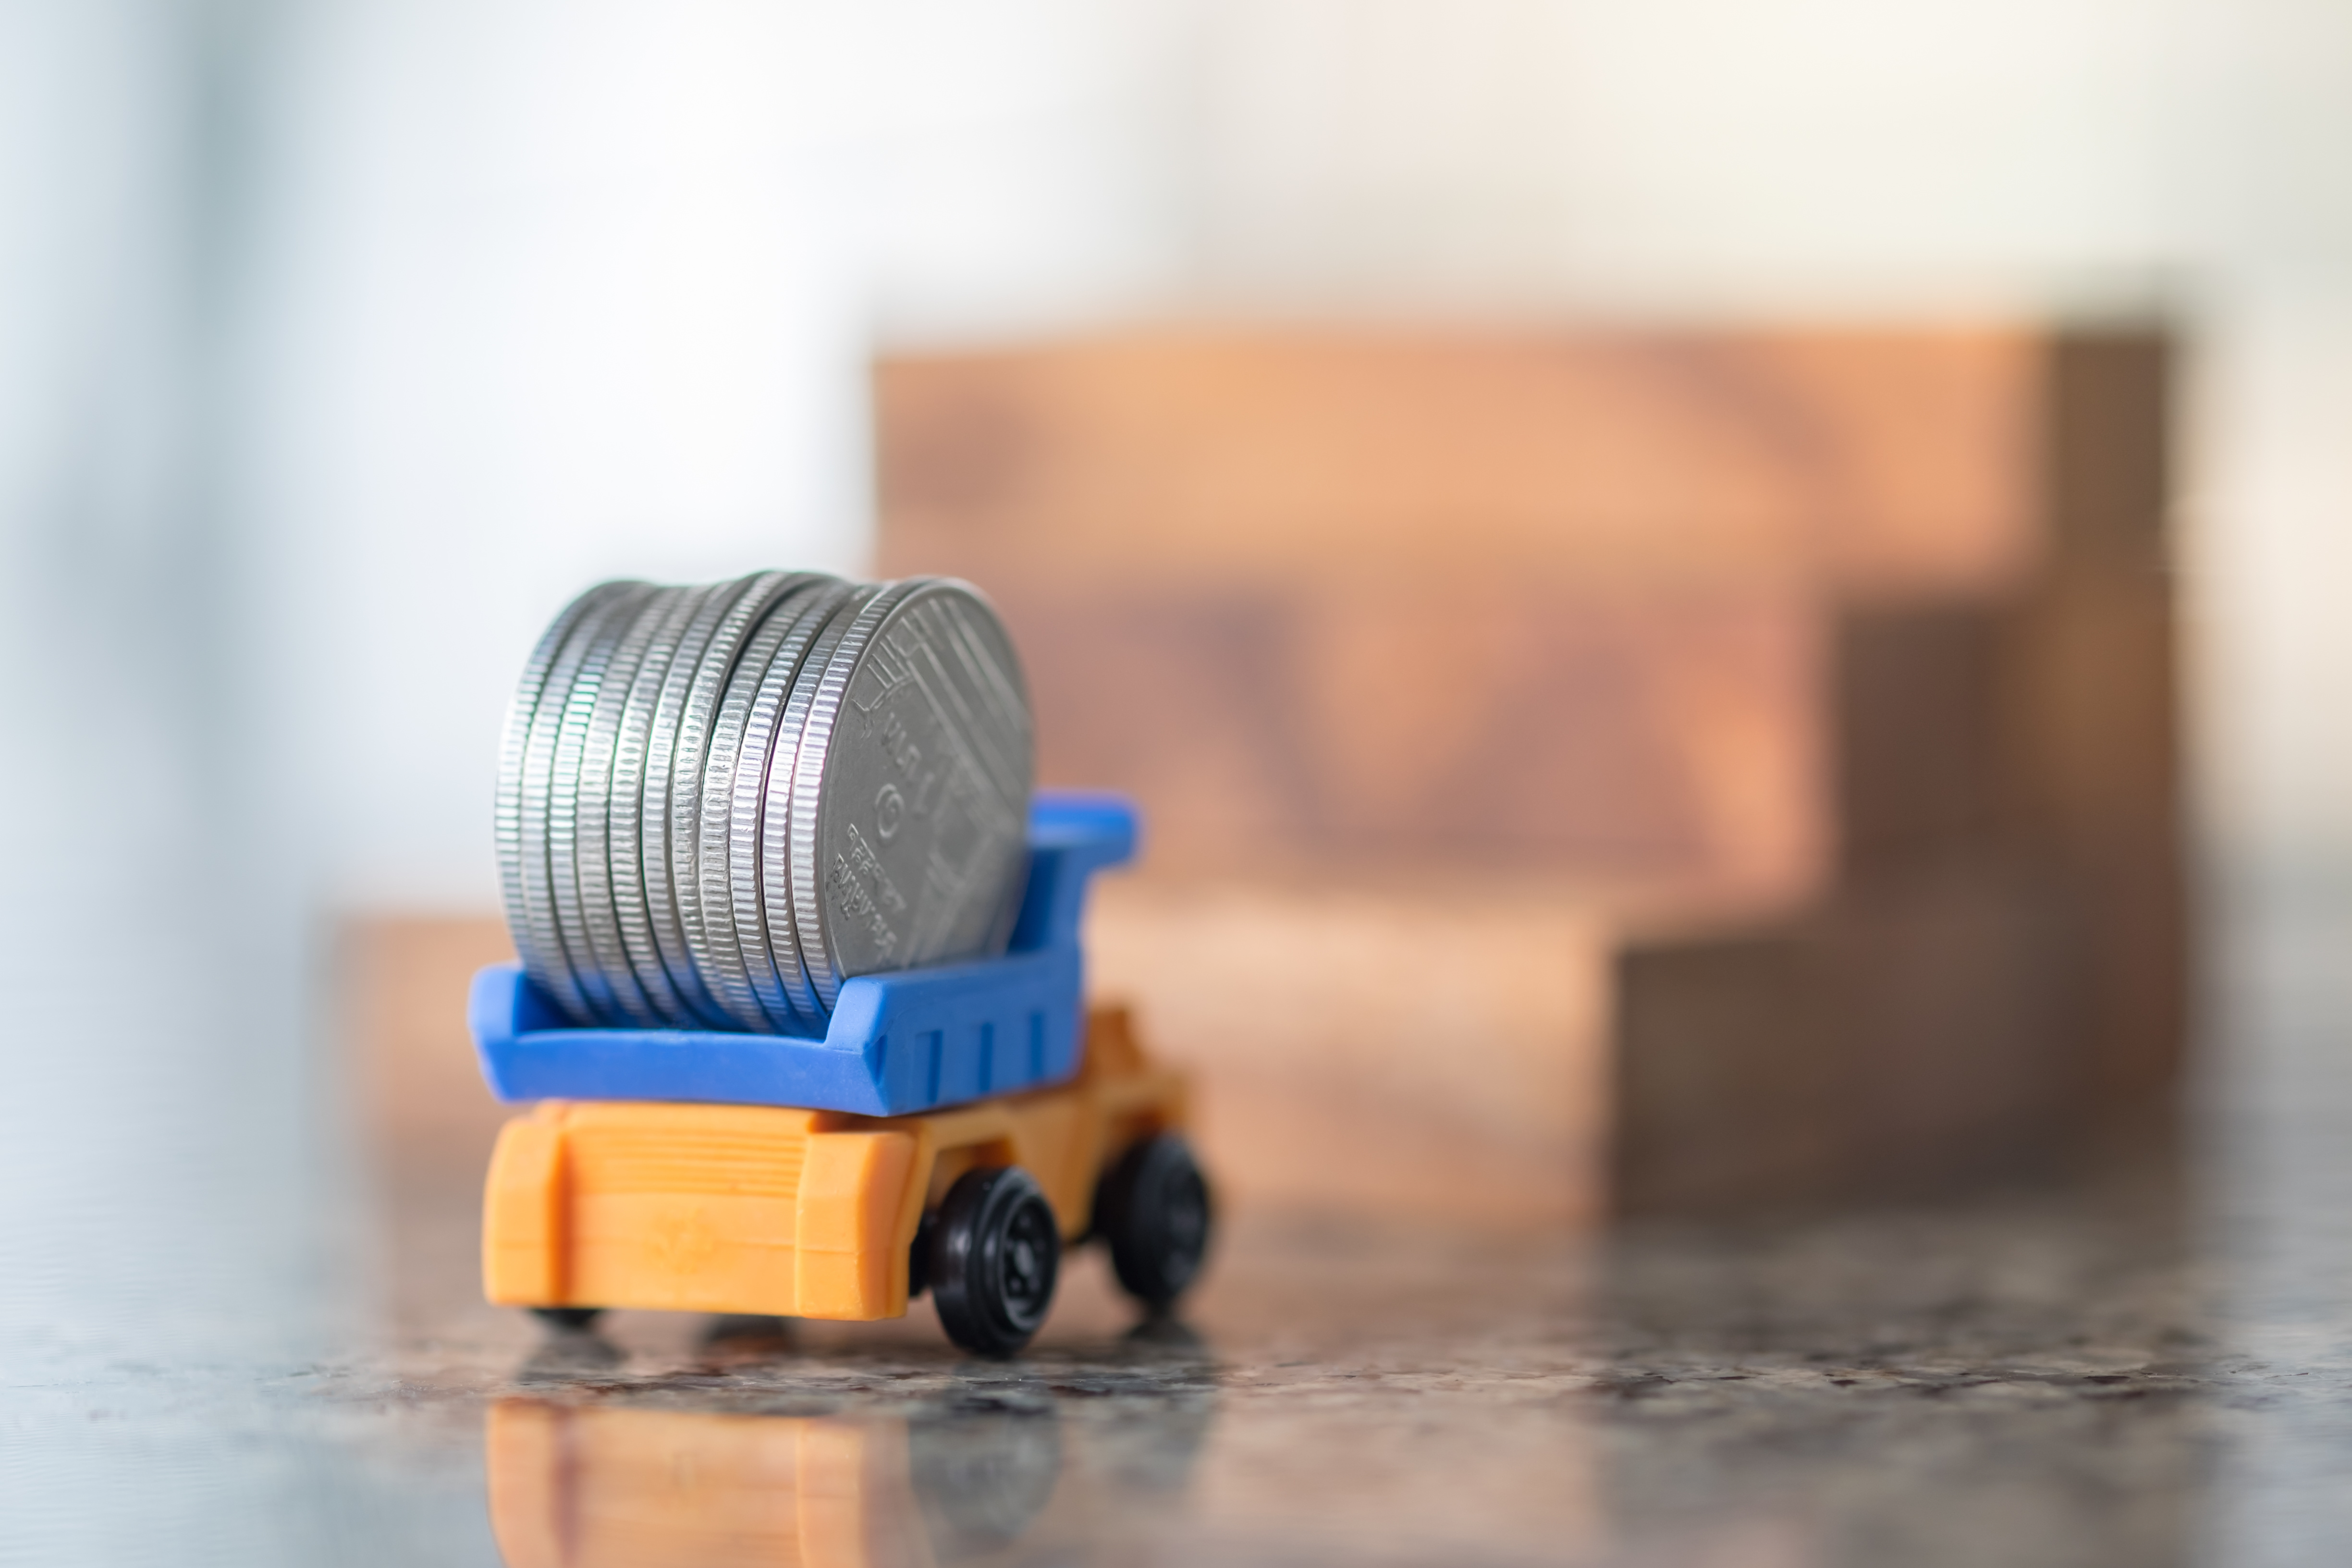 Toy Truck Carrying Coins-AdobeStock_196523697